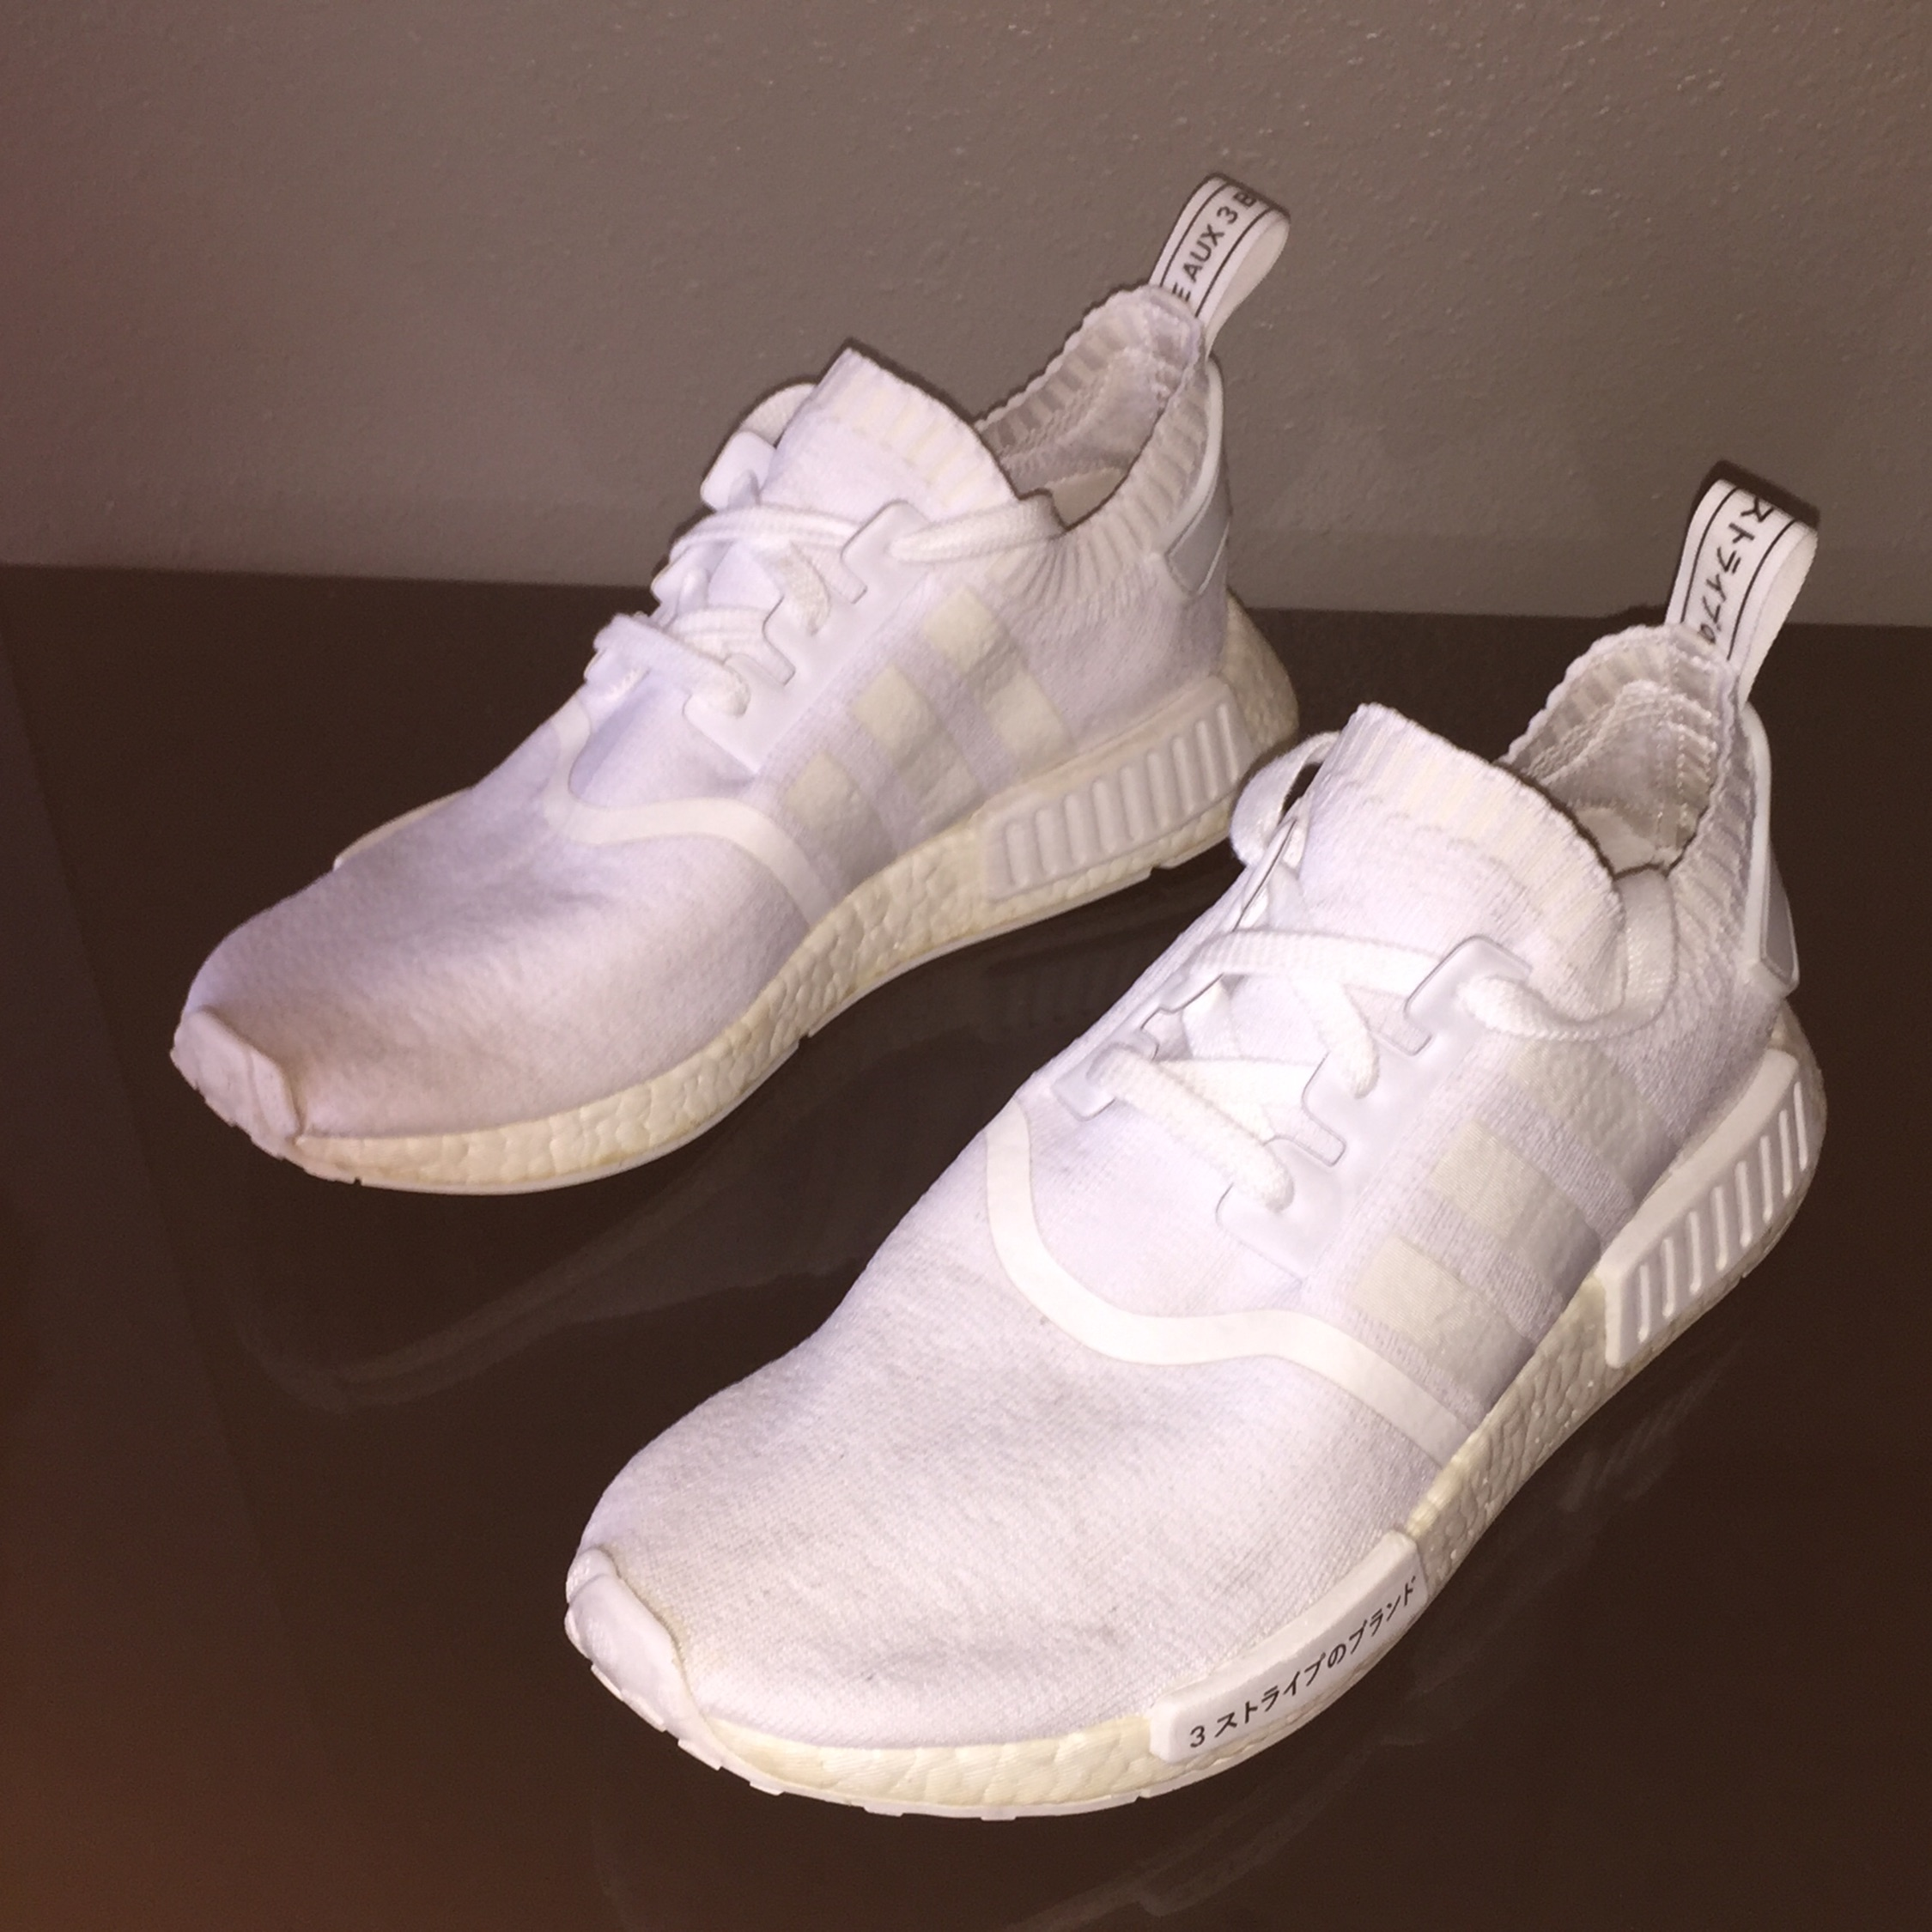 Nmd R1 Japan Boost Triple White